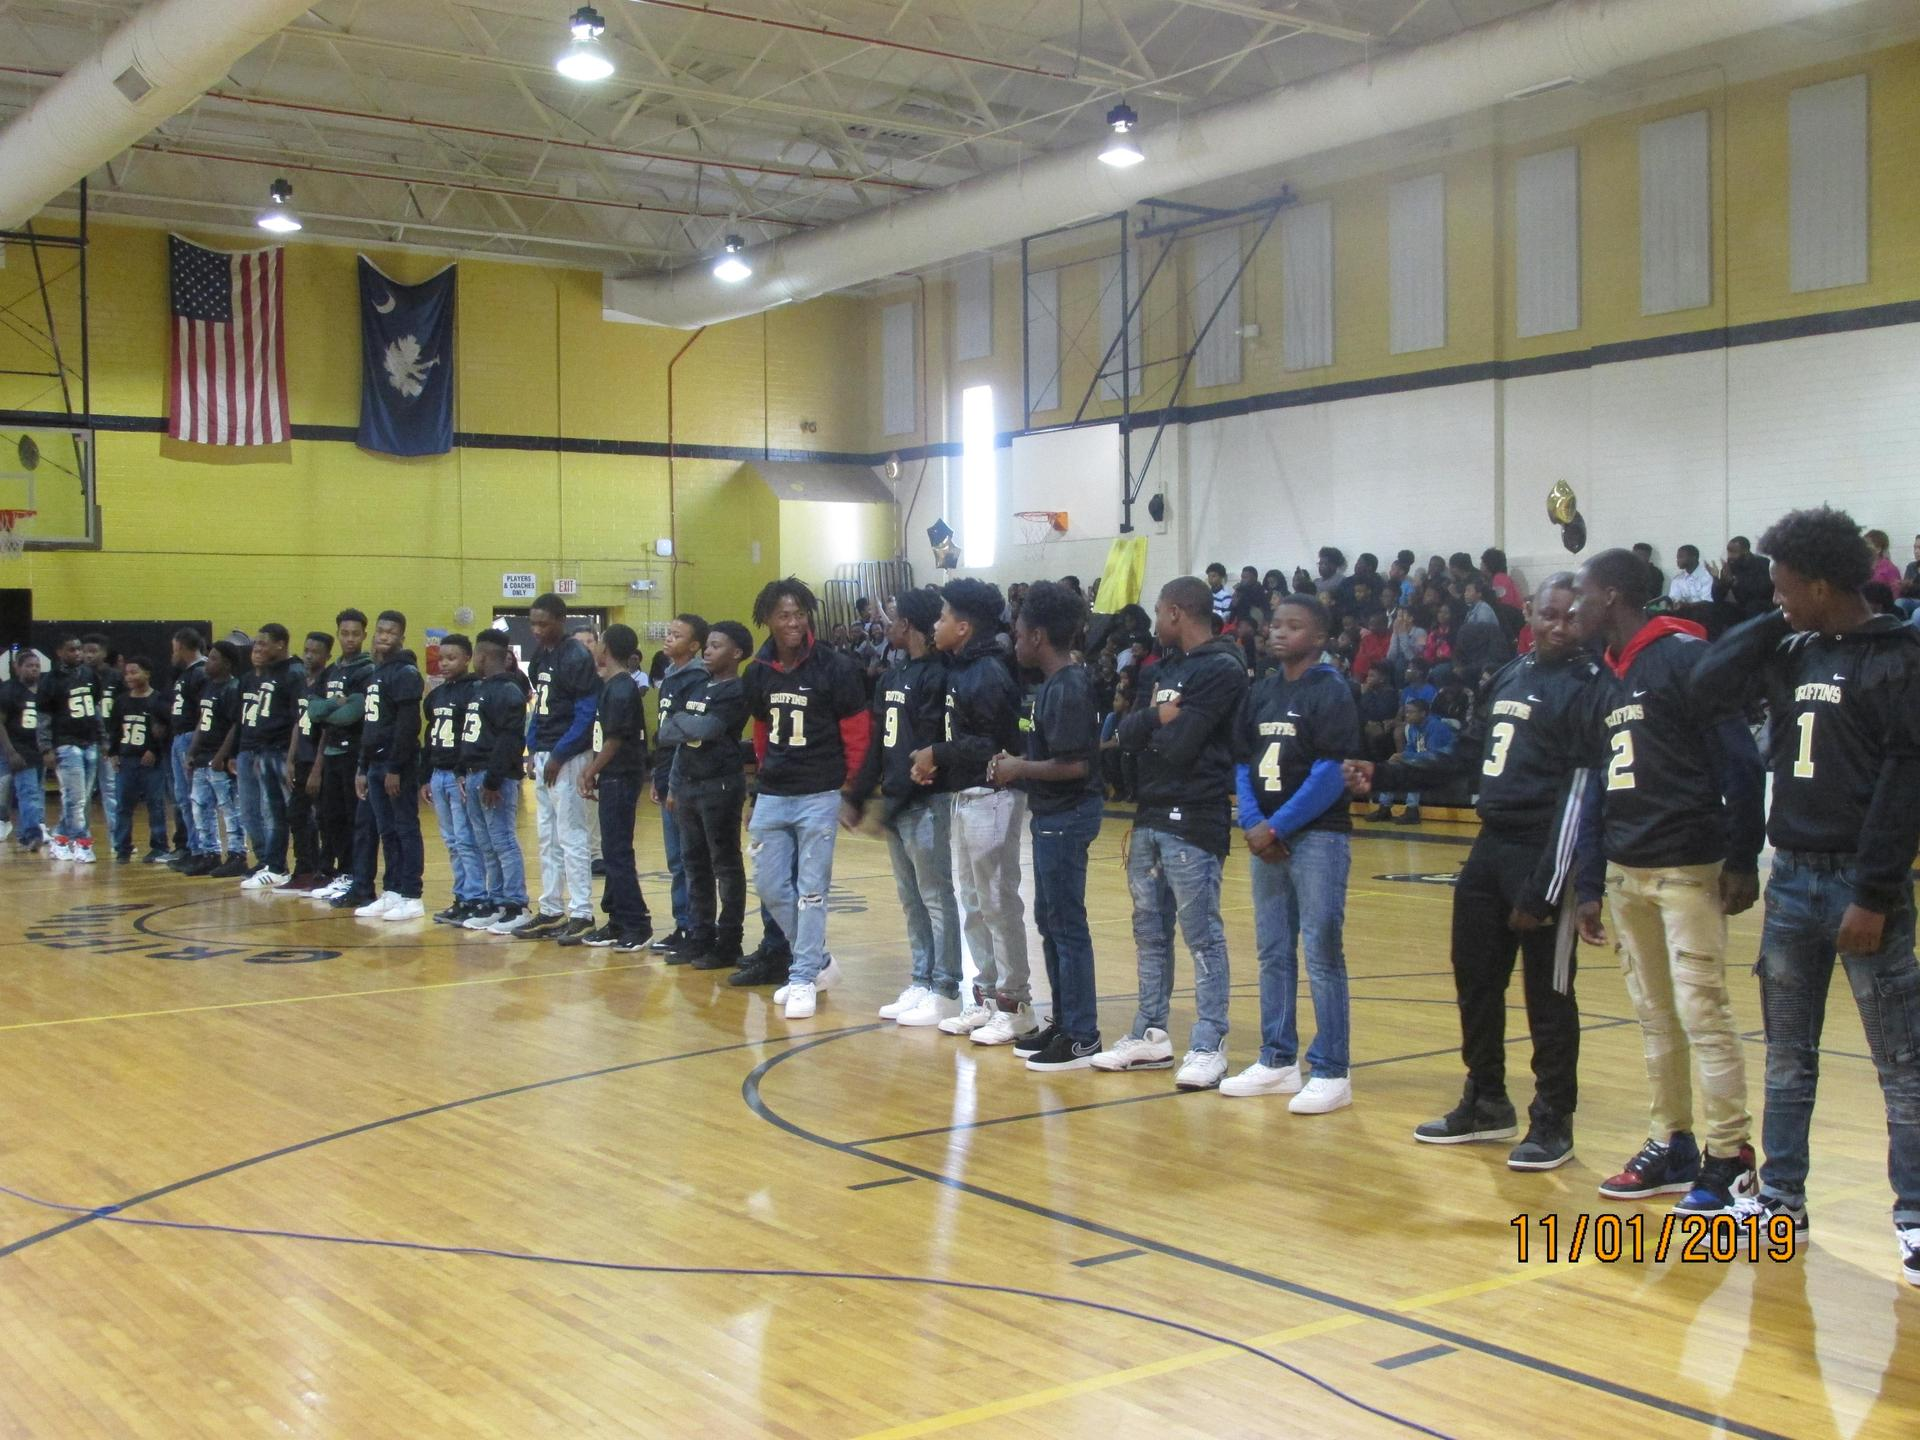 Football Team in the Gym at Pep Rally